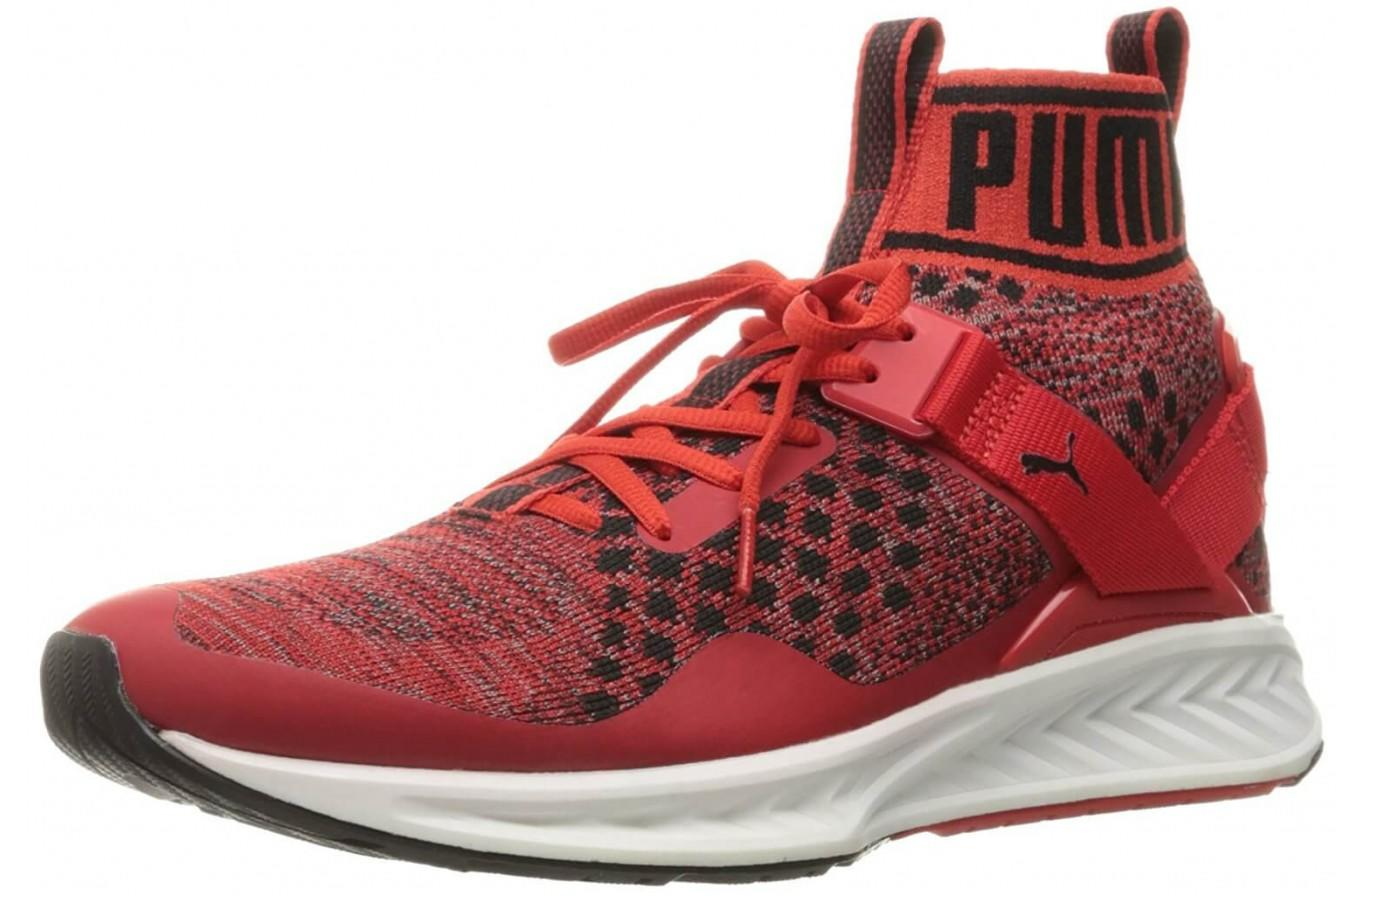 4b24a38dafb the Puma Ignite evoKnit is a stylish high top running shoe ...